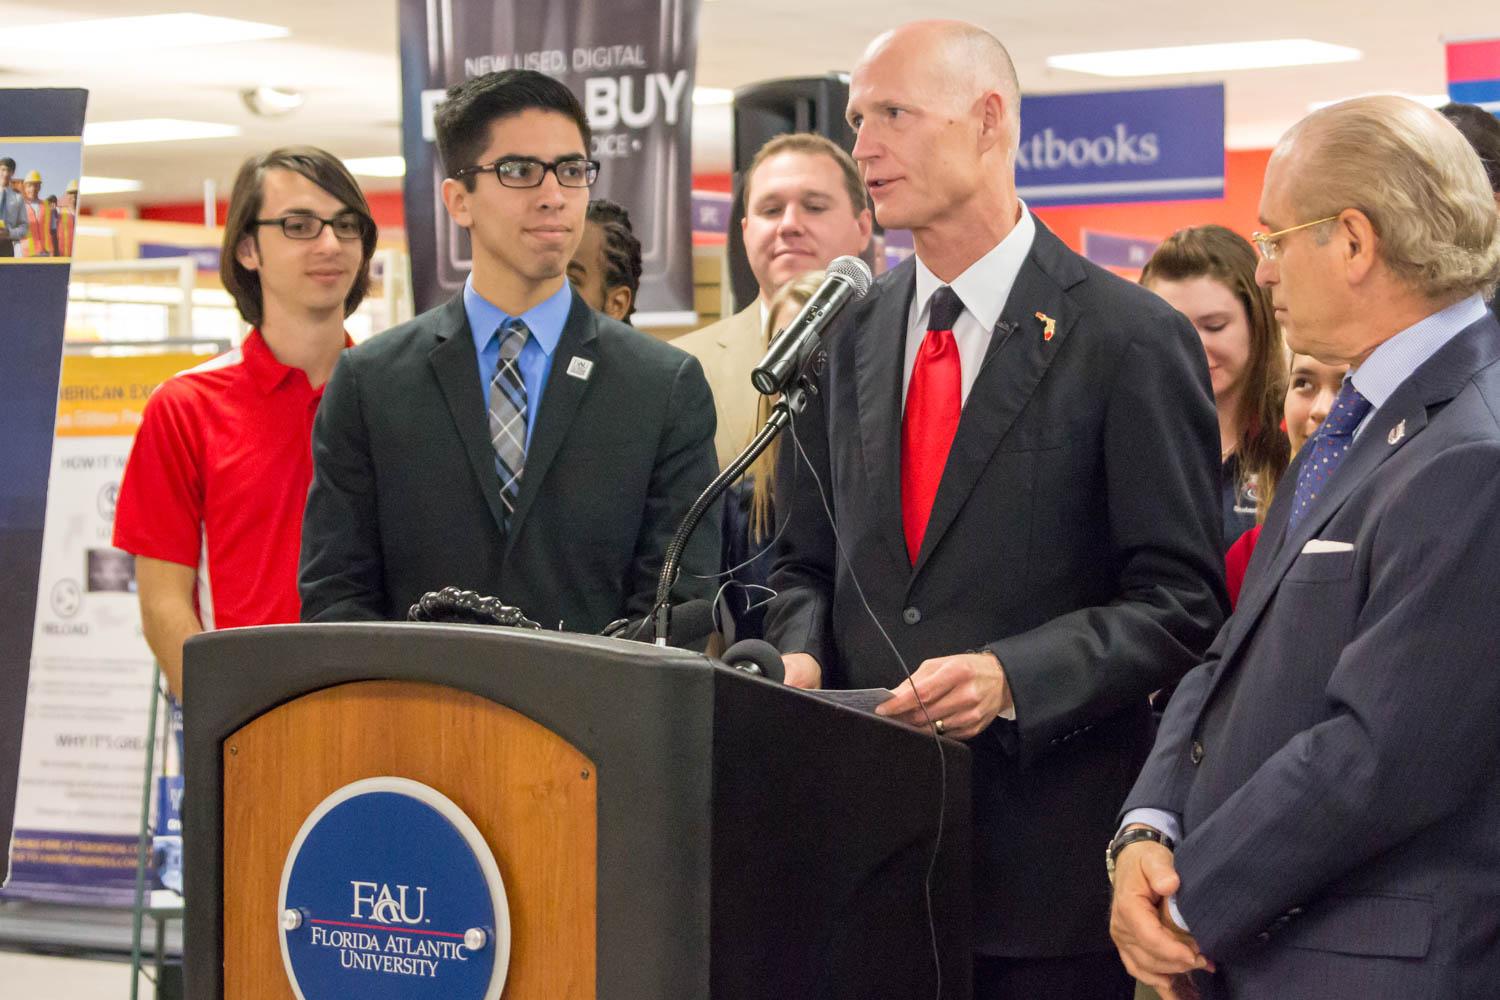 Florida Governor Rick Scott addresses the public in FAU's bookstore on Feb. 12, 2015 about eliminating sales tax on college textbooks. Photo by Idalis Streat.